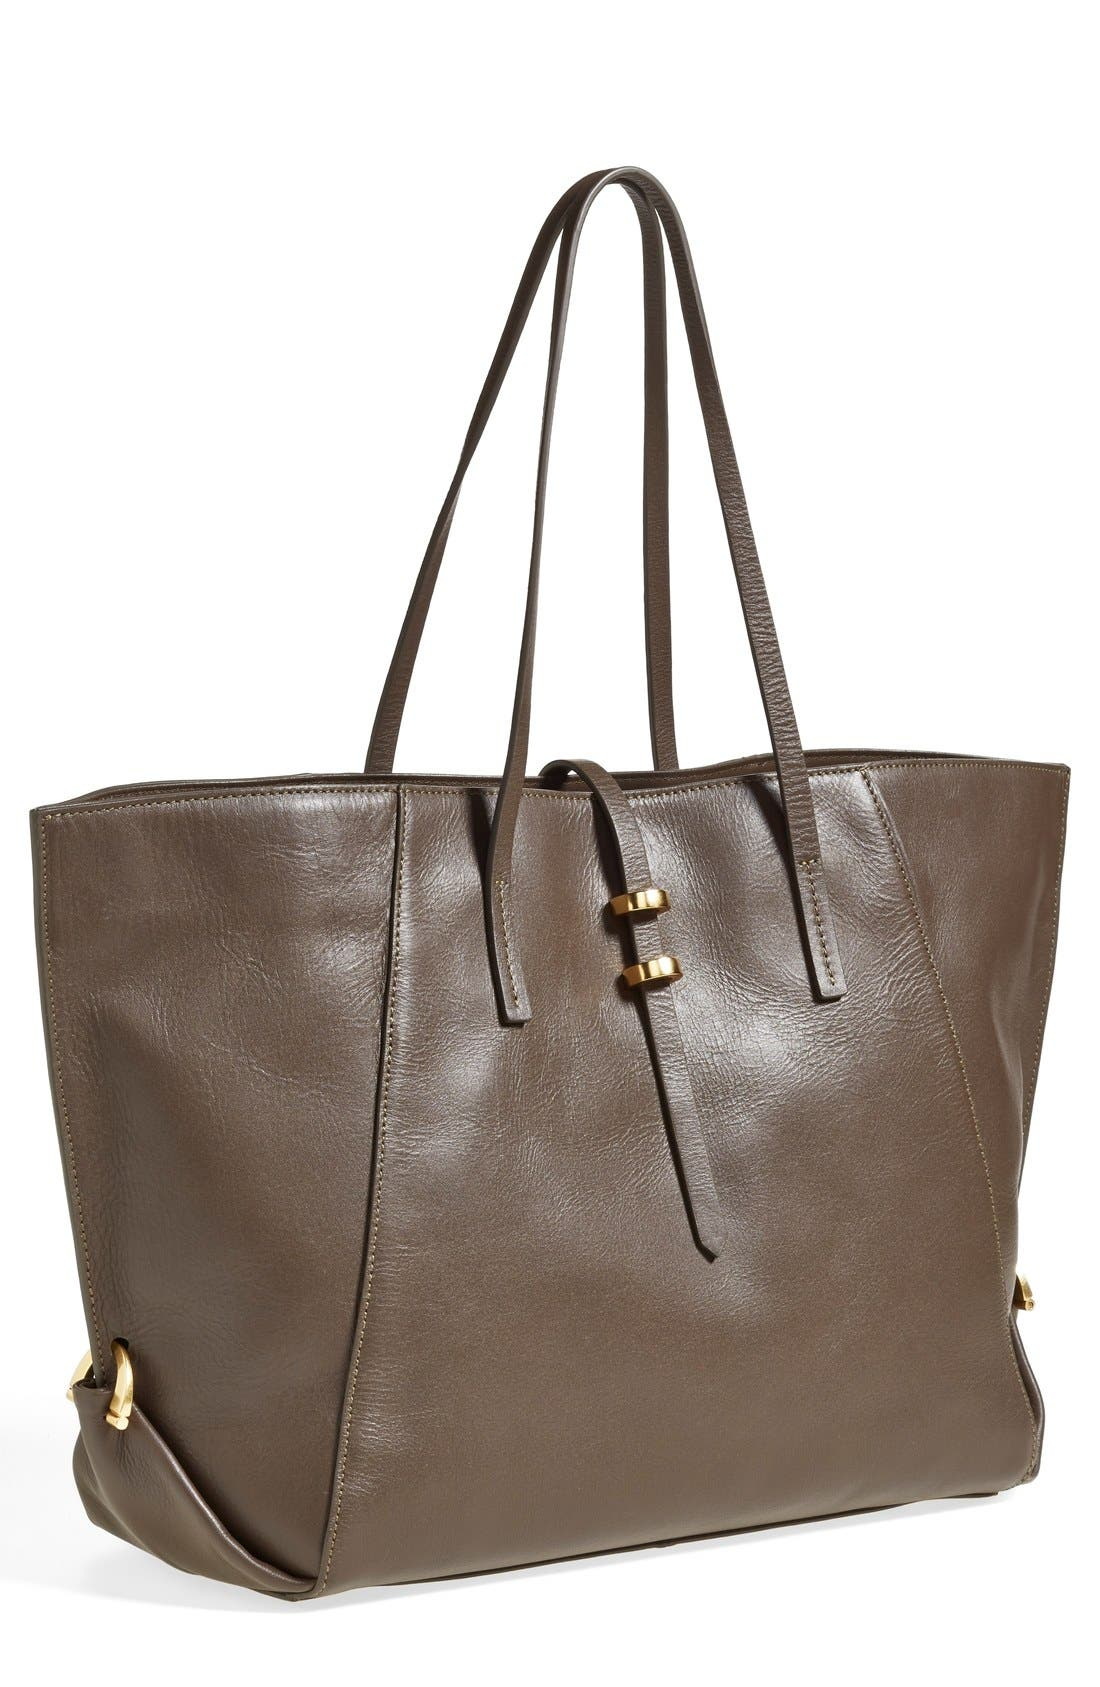 Alternate Image 1 Selected - ZAC Zac Posen 'Eartha' Leather Shopper